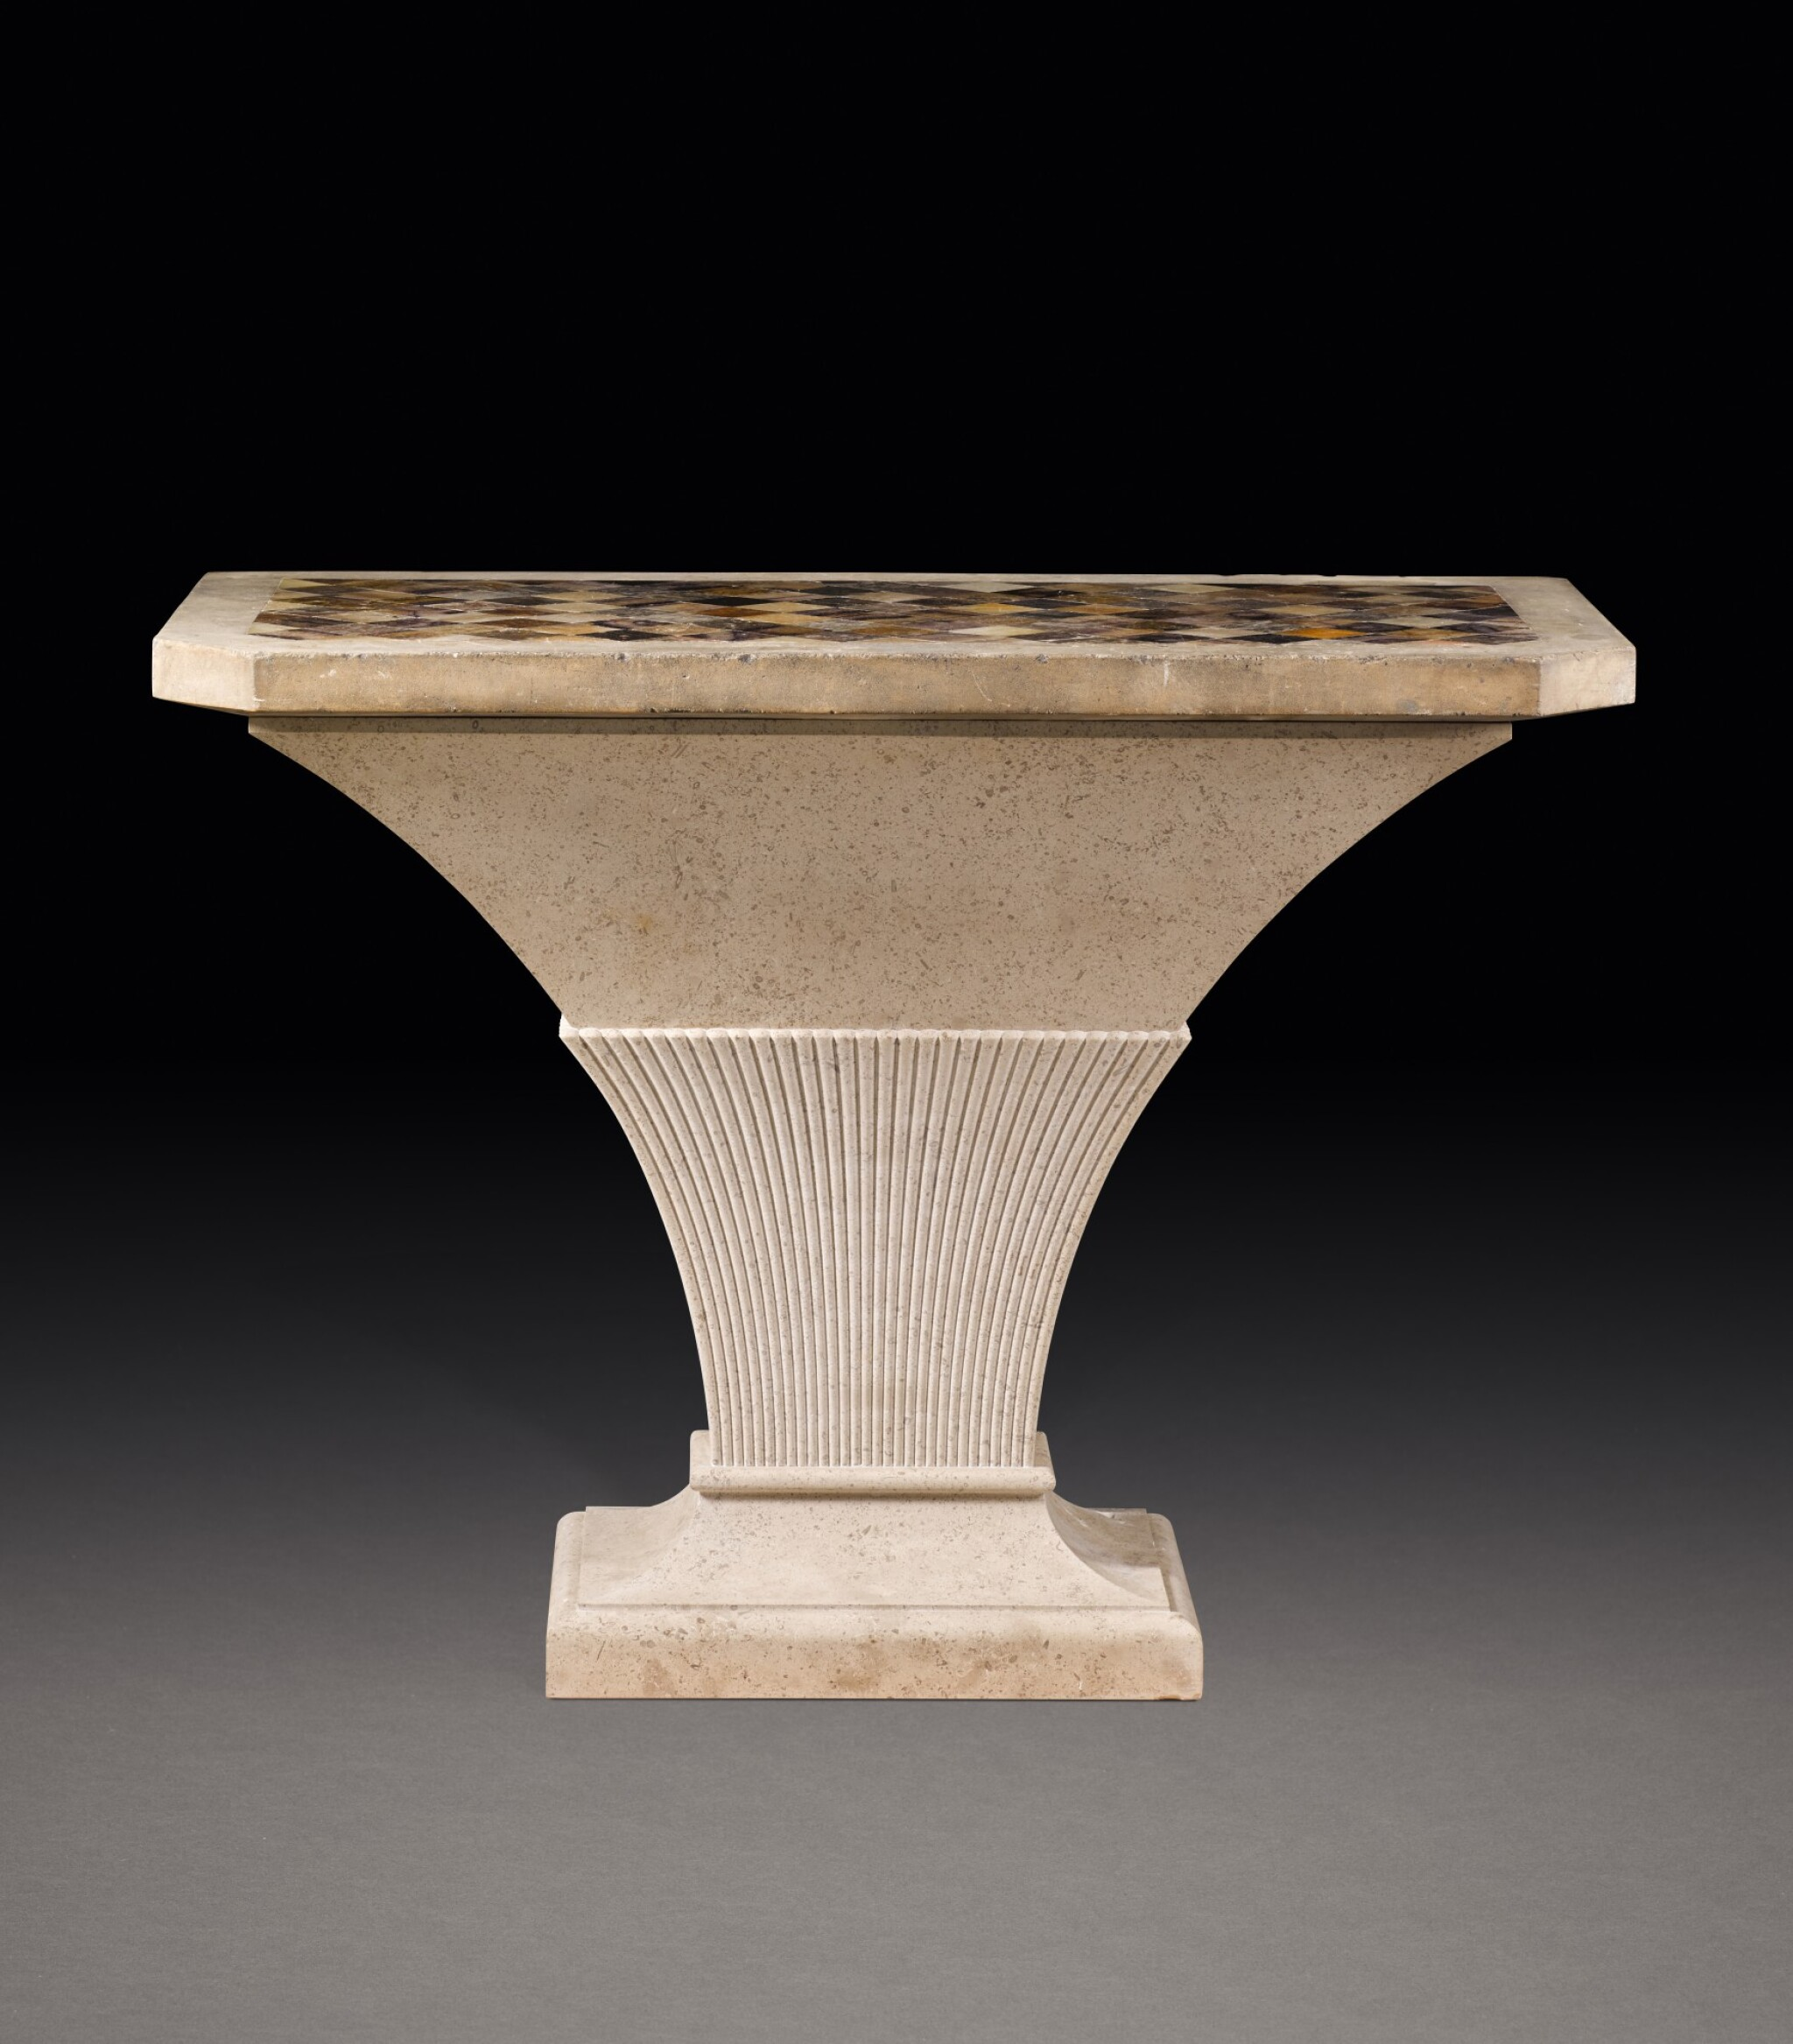 View full screen - View 1 of Lot 150. A GEORGE III PORTLAND STONE, BLUE JOHN, SPECIMEN MARBLES AND FOSSILISED LIMESTONE TABLE, THE TOP LATE 18TH/EARLY 19TH CENTURY, THE STAND MODERN.